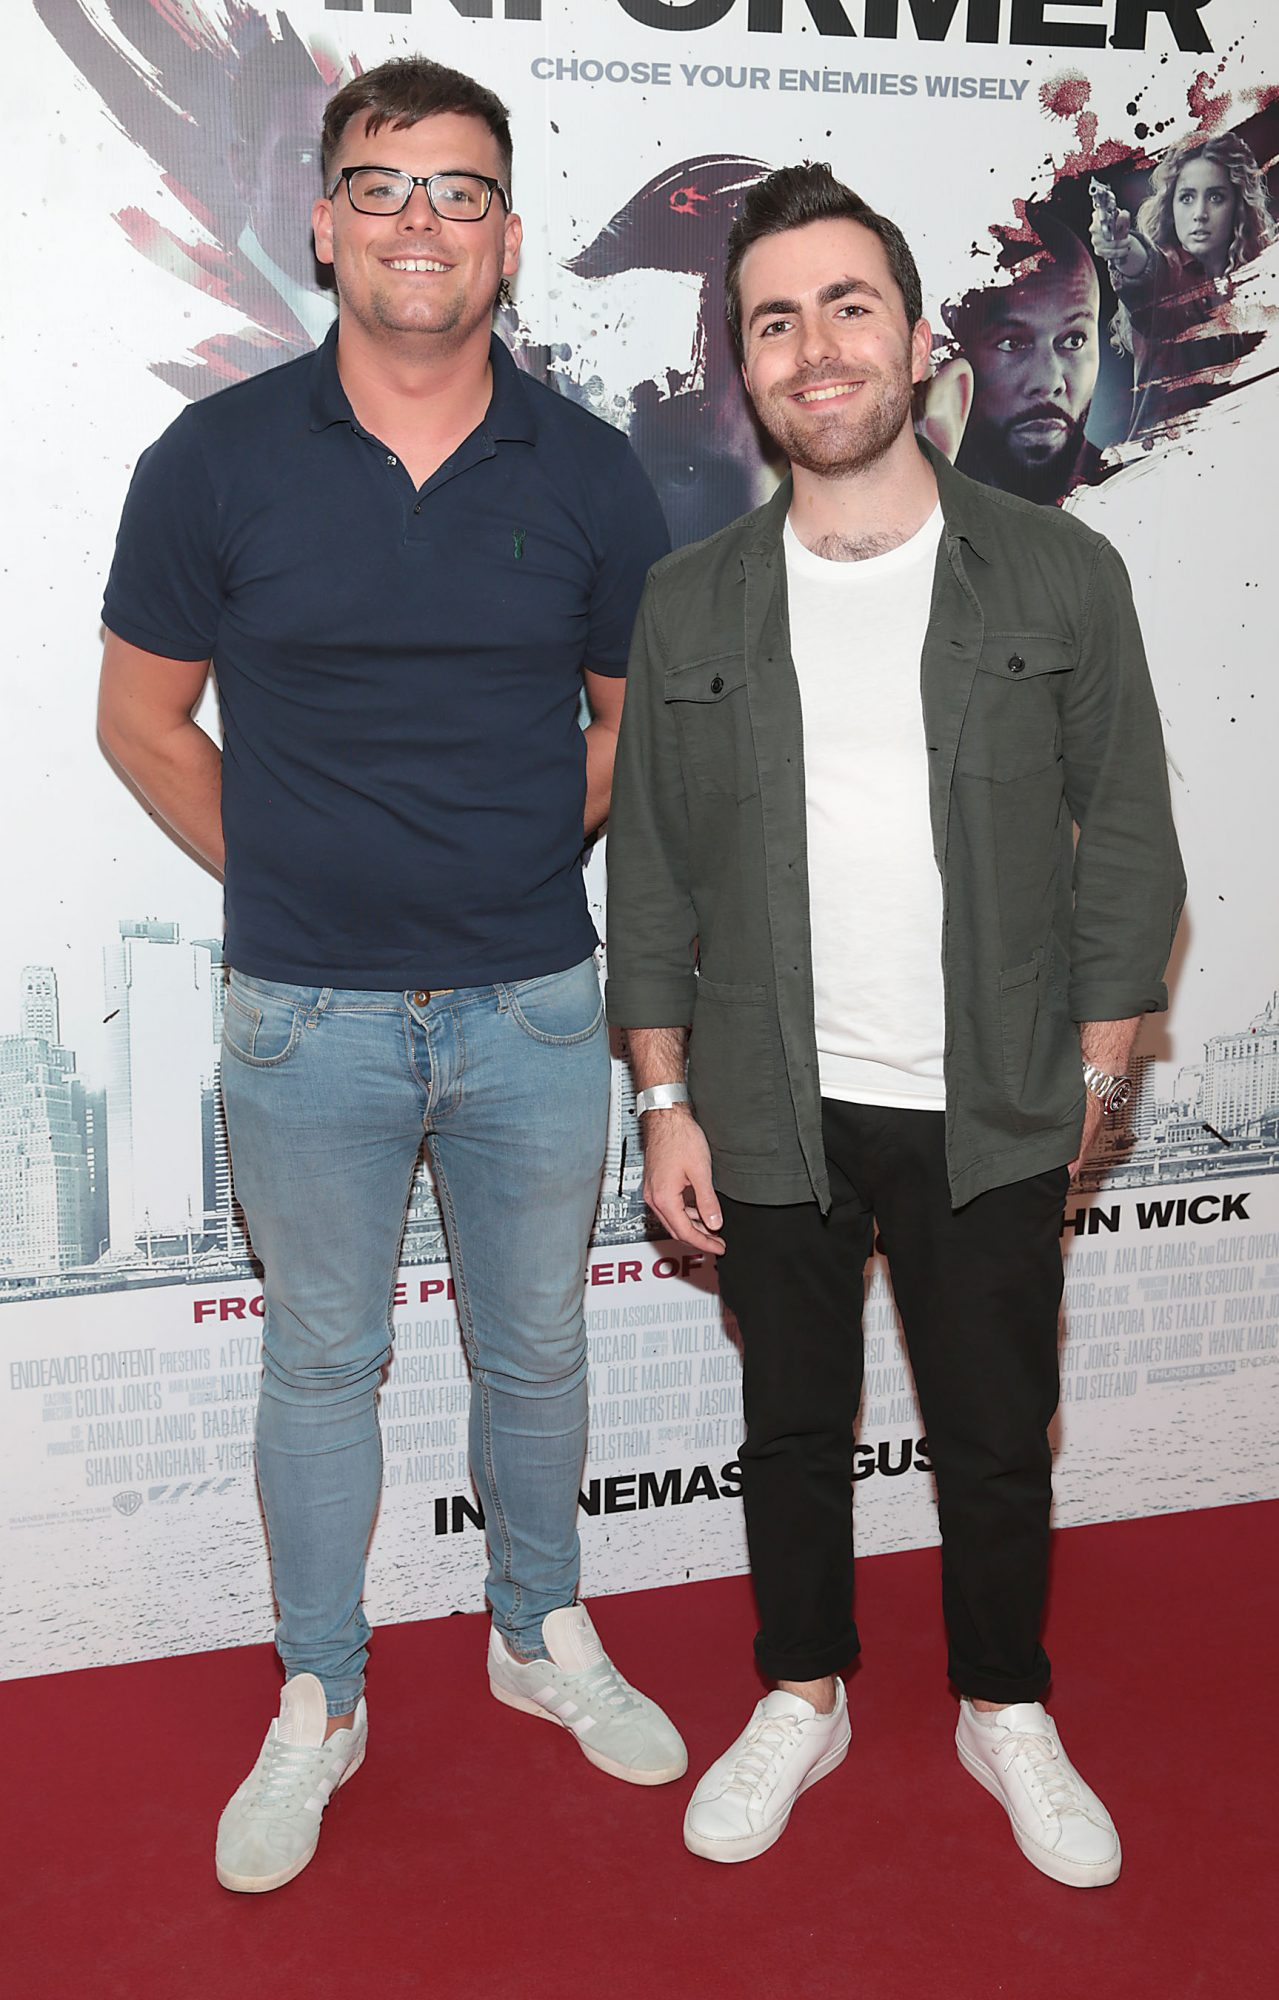 Dan Wilson and Jamie Skerrett at the special preview screening of The Informer at the Lighthouse Cinema Dublin. Pic: Brian McEvoy